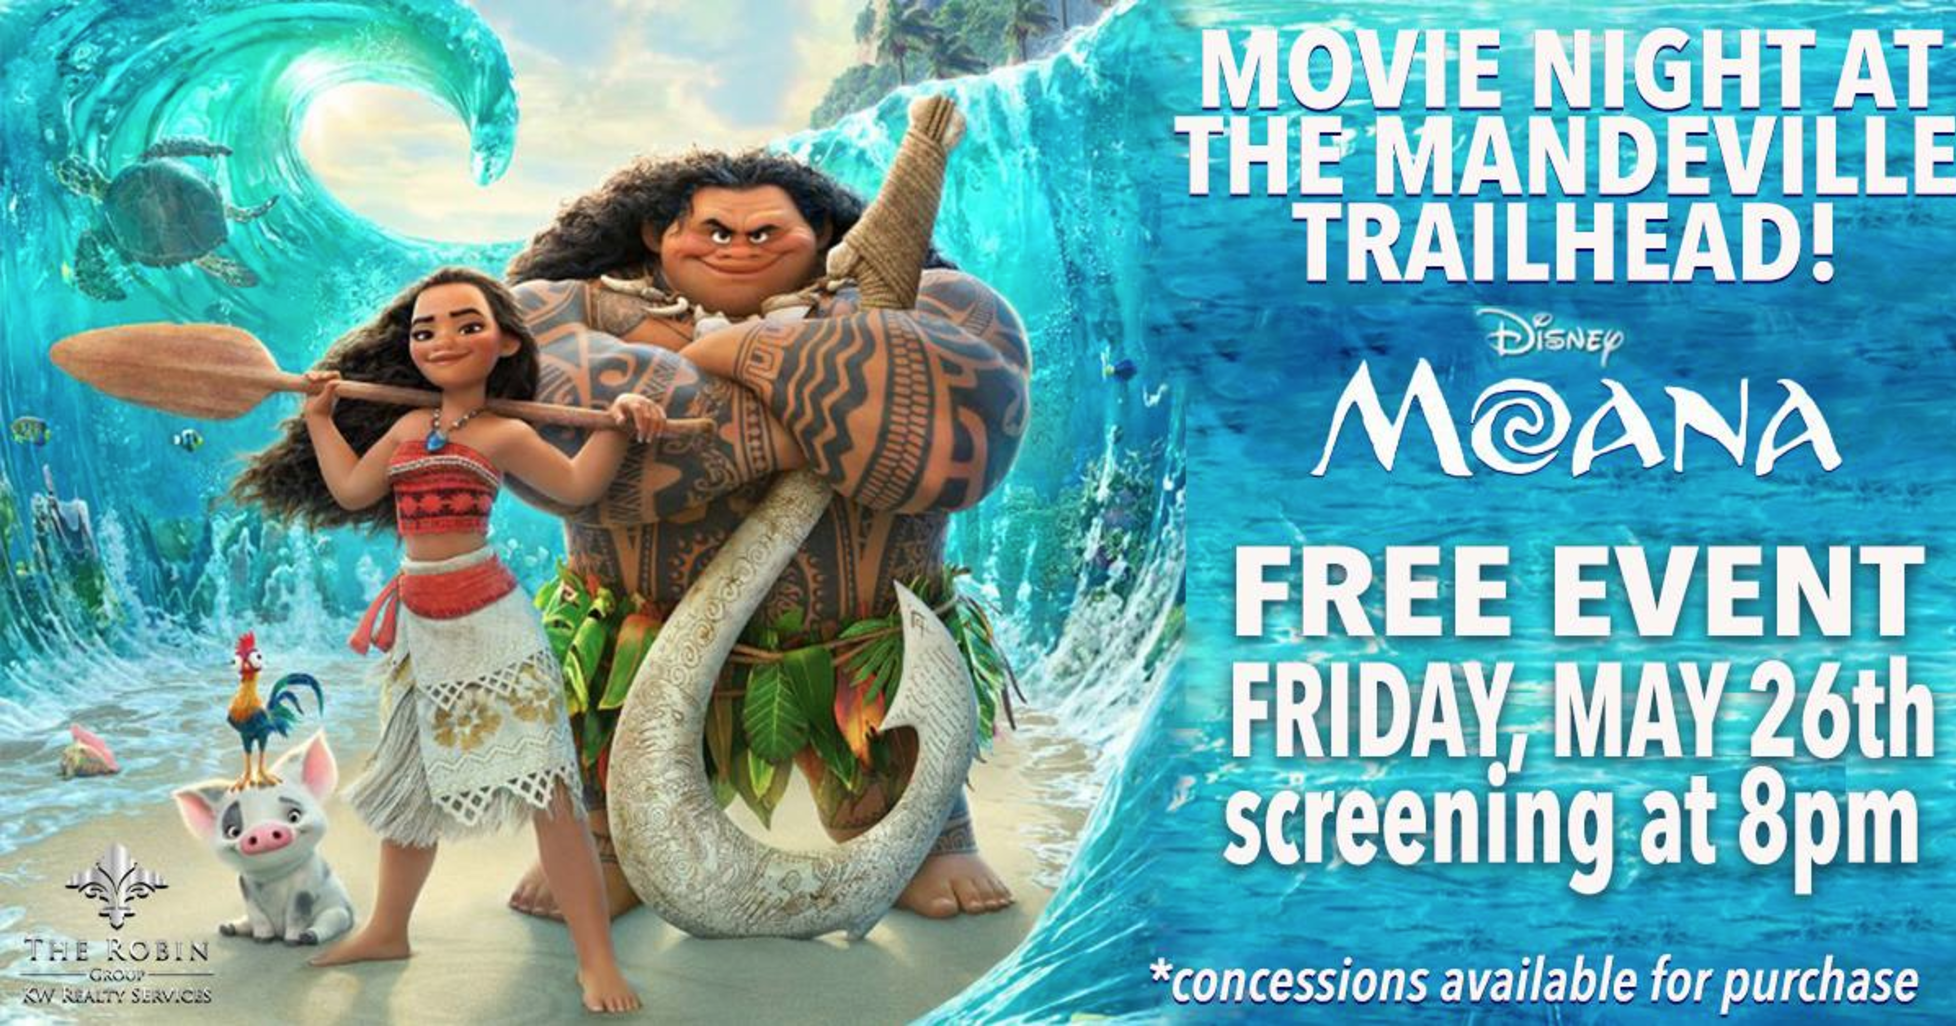 Moana Definitely Made Waves at the Mandeville Trailhead Last Weekend